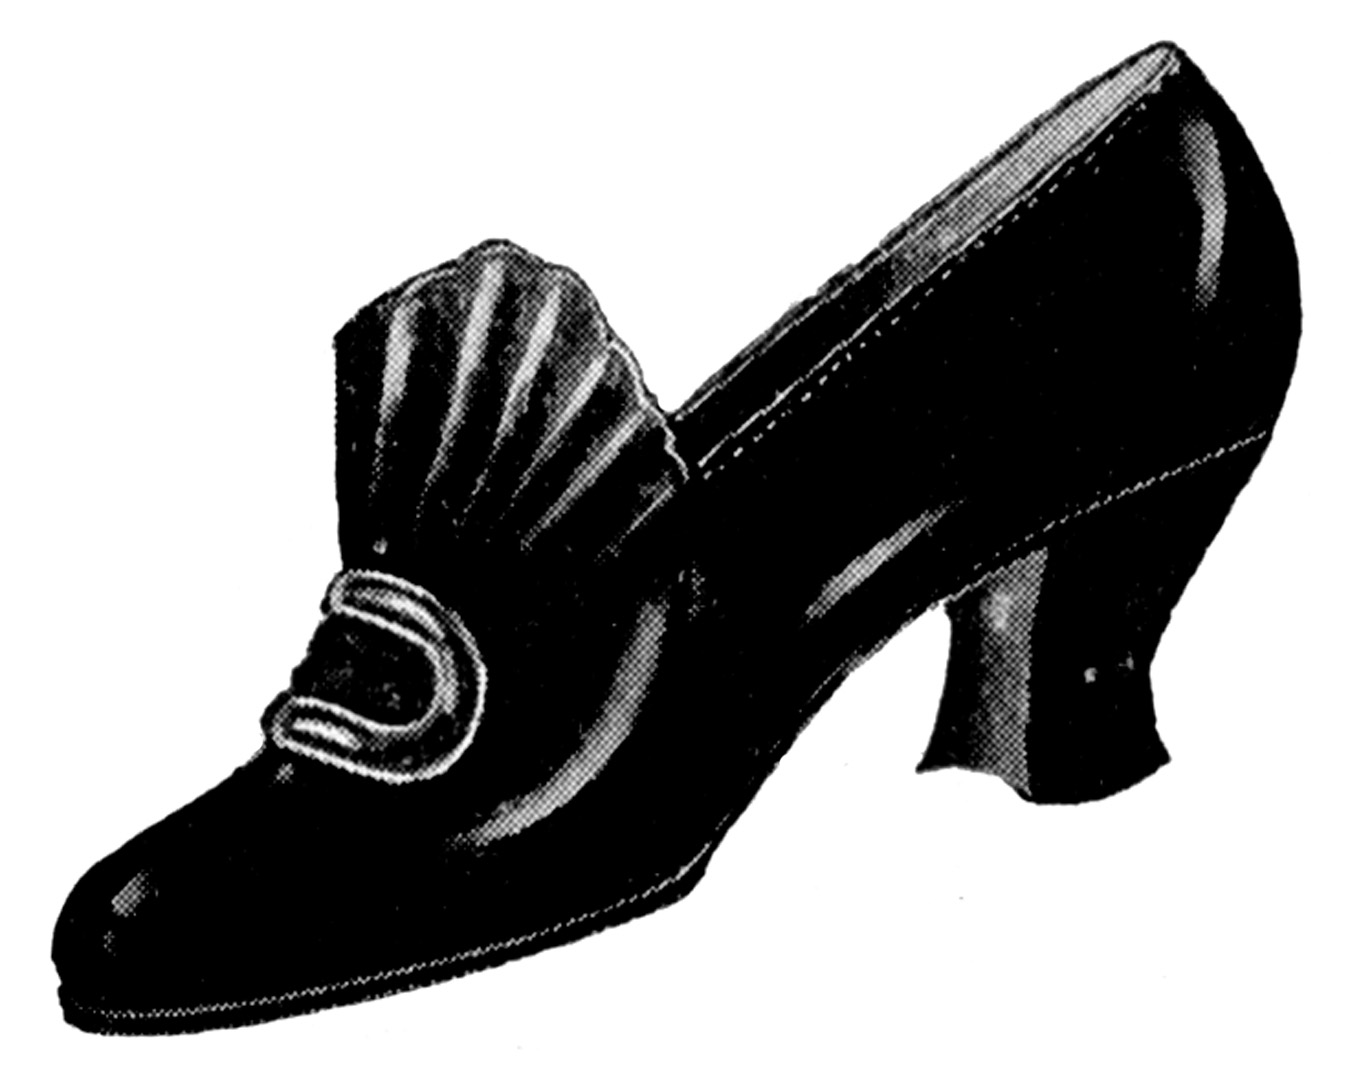 Heels clipart vintage shoe Pretty Ladies The Clip Victorian